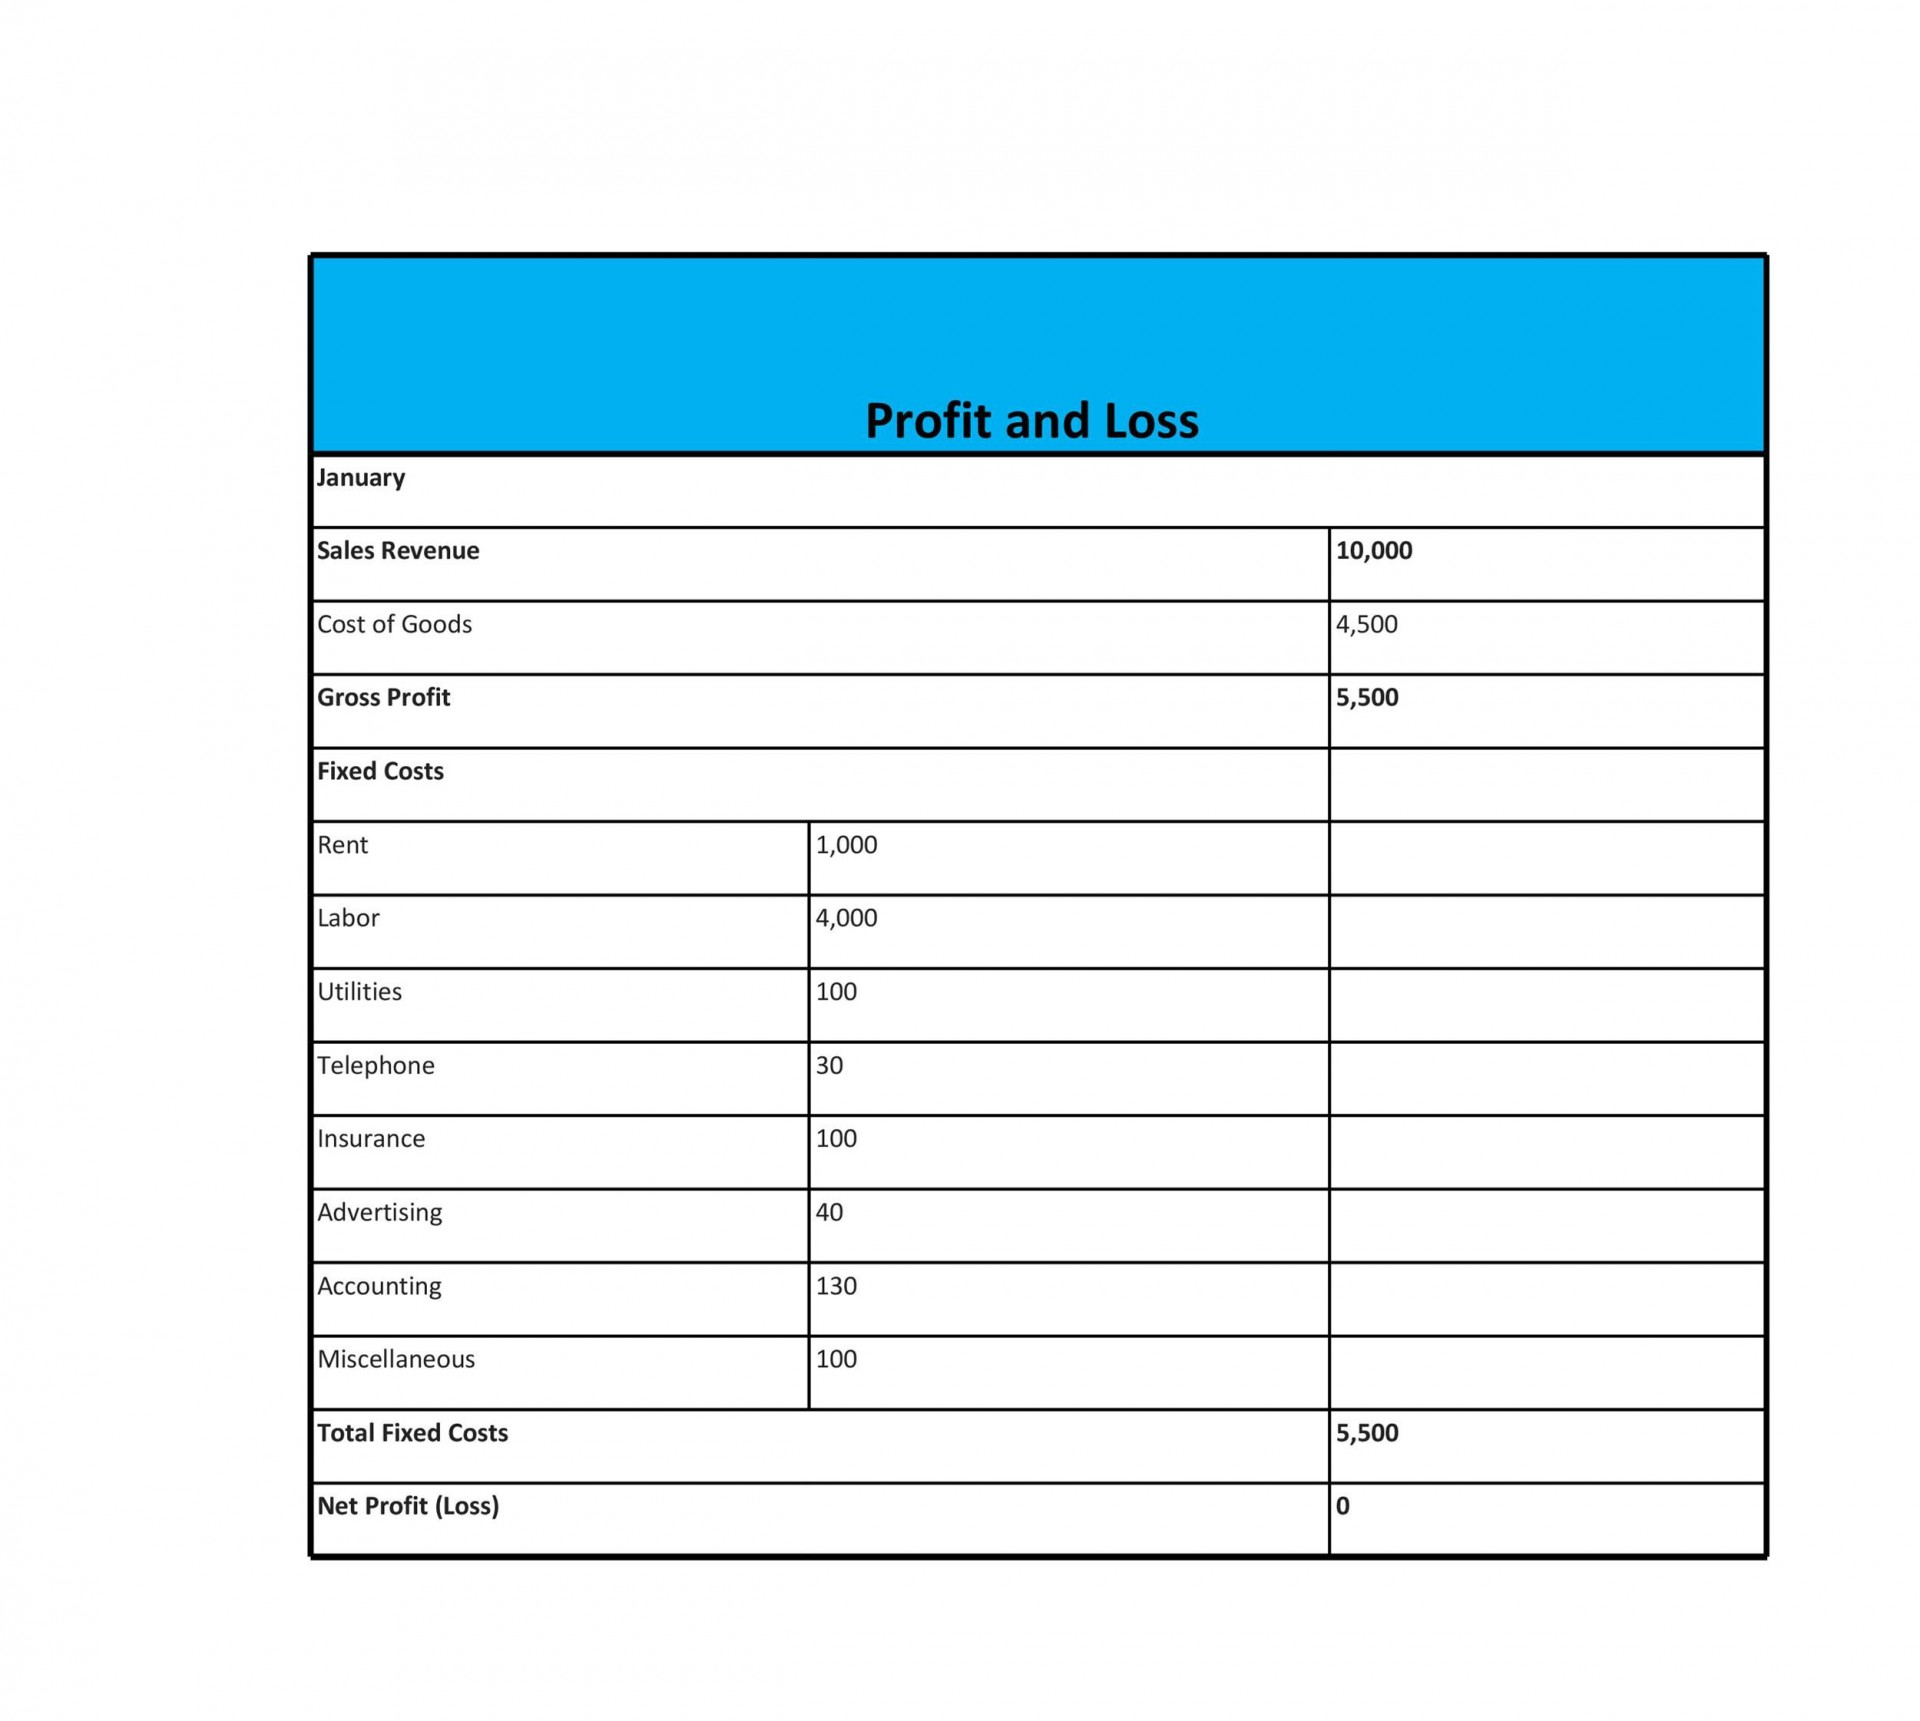 008 Staggering Simple Profit And Los Template High Definition  Free Form Statement For Self Employed1920